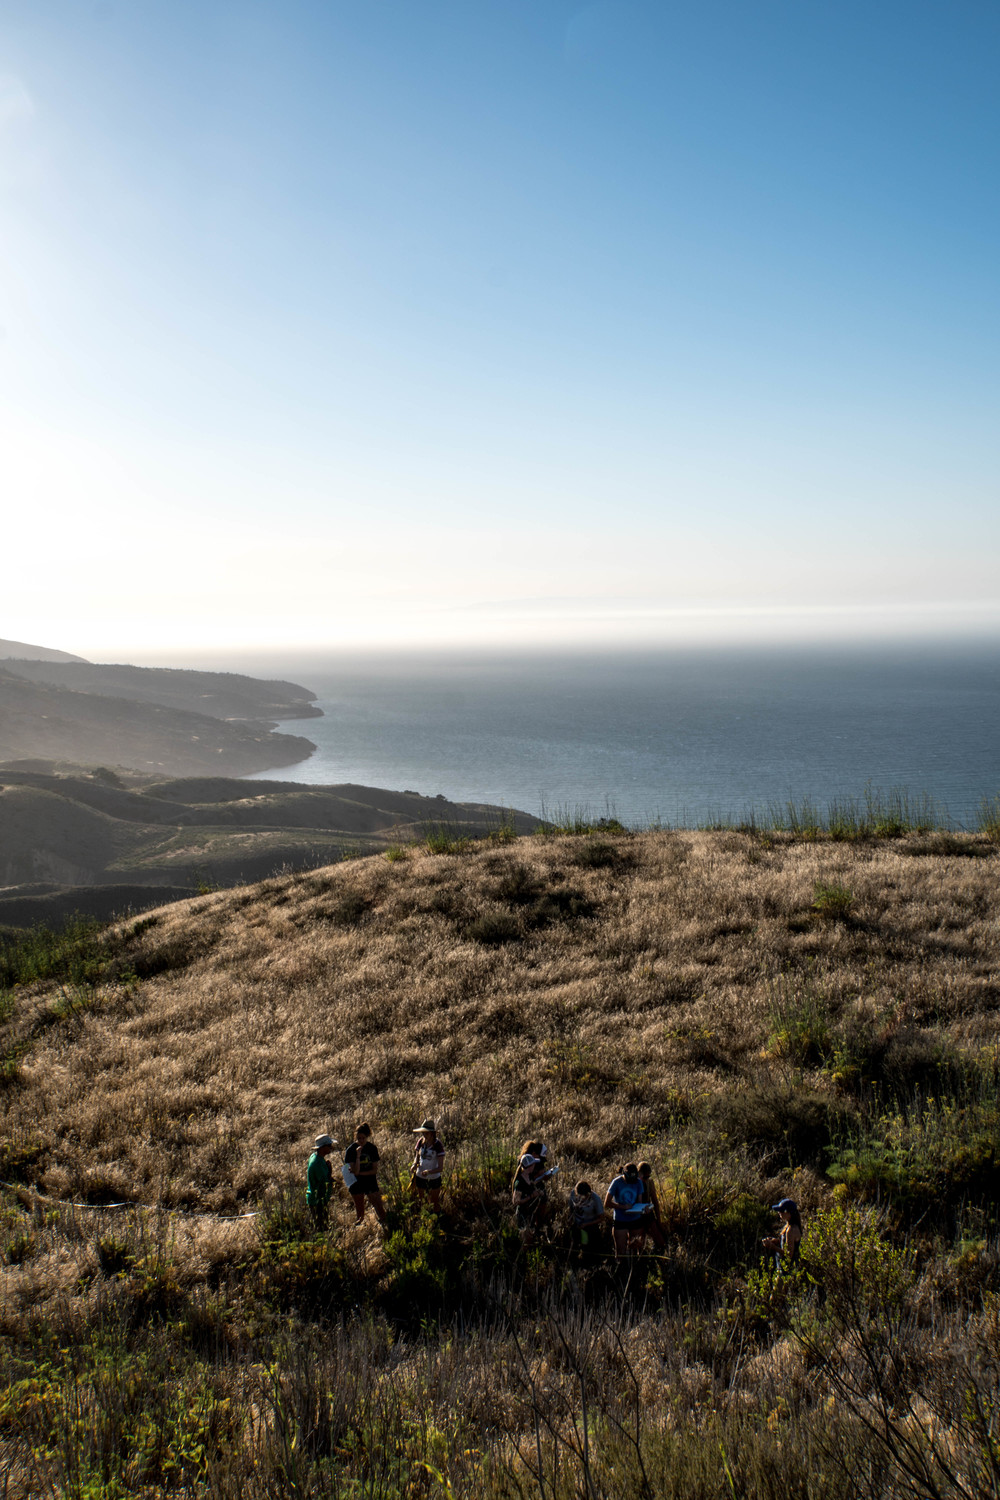 Field biology with a view. Above Prisoners Harbor, Santa Cruz Island, CA.